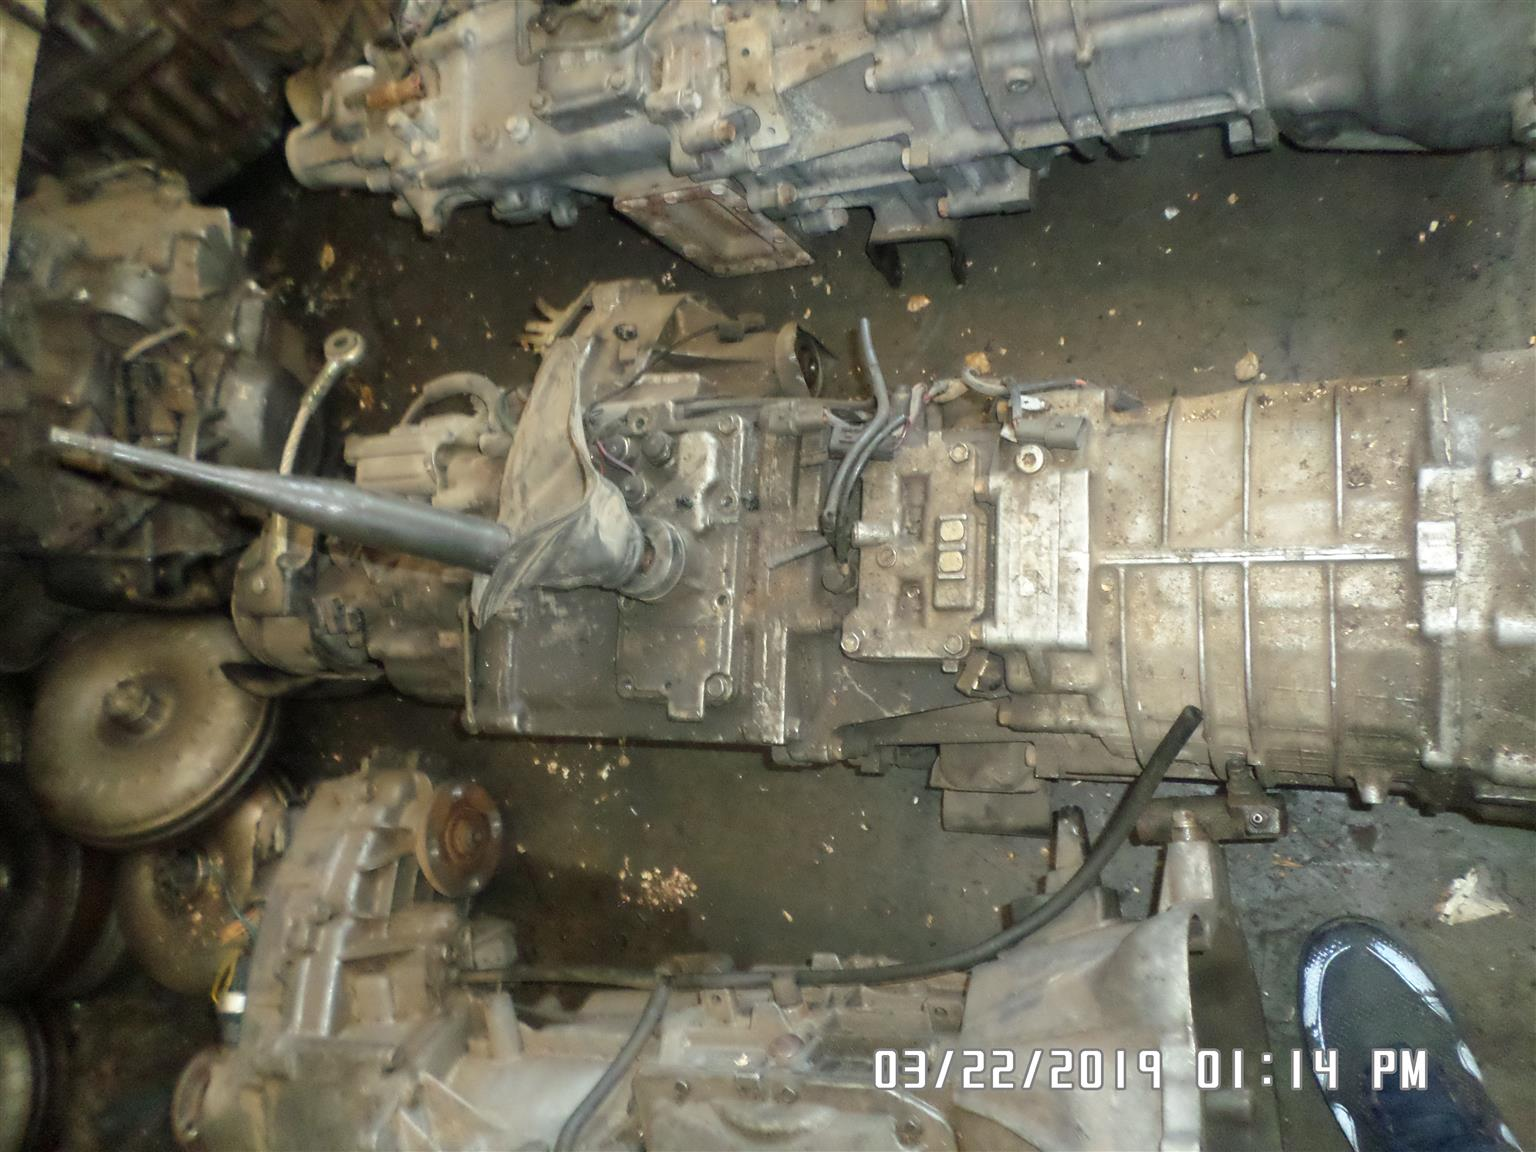 Mitsubishi Pajero 4m41 4x4 5spd gearbox for sale | Junk Mail